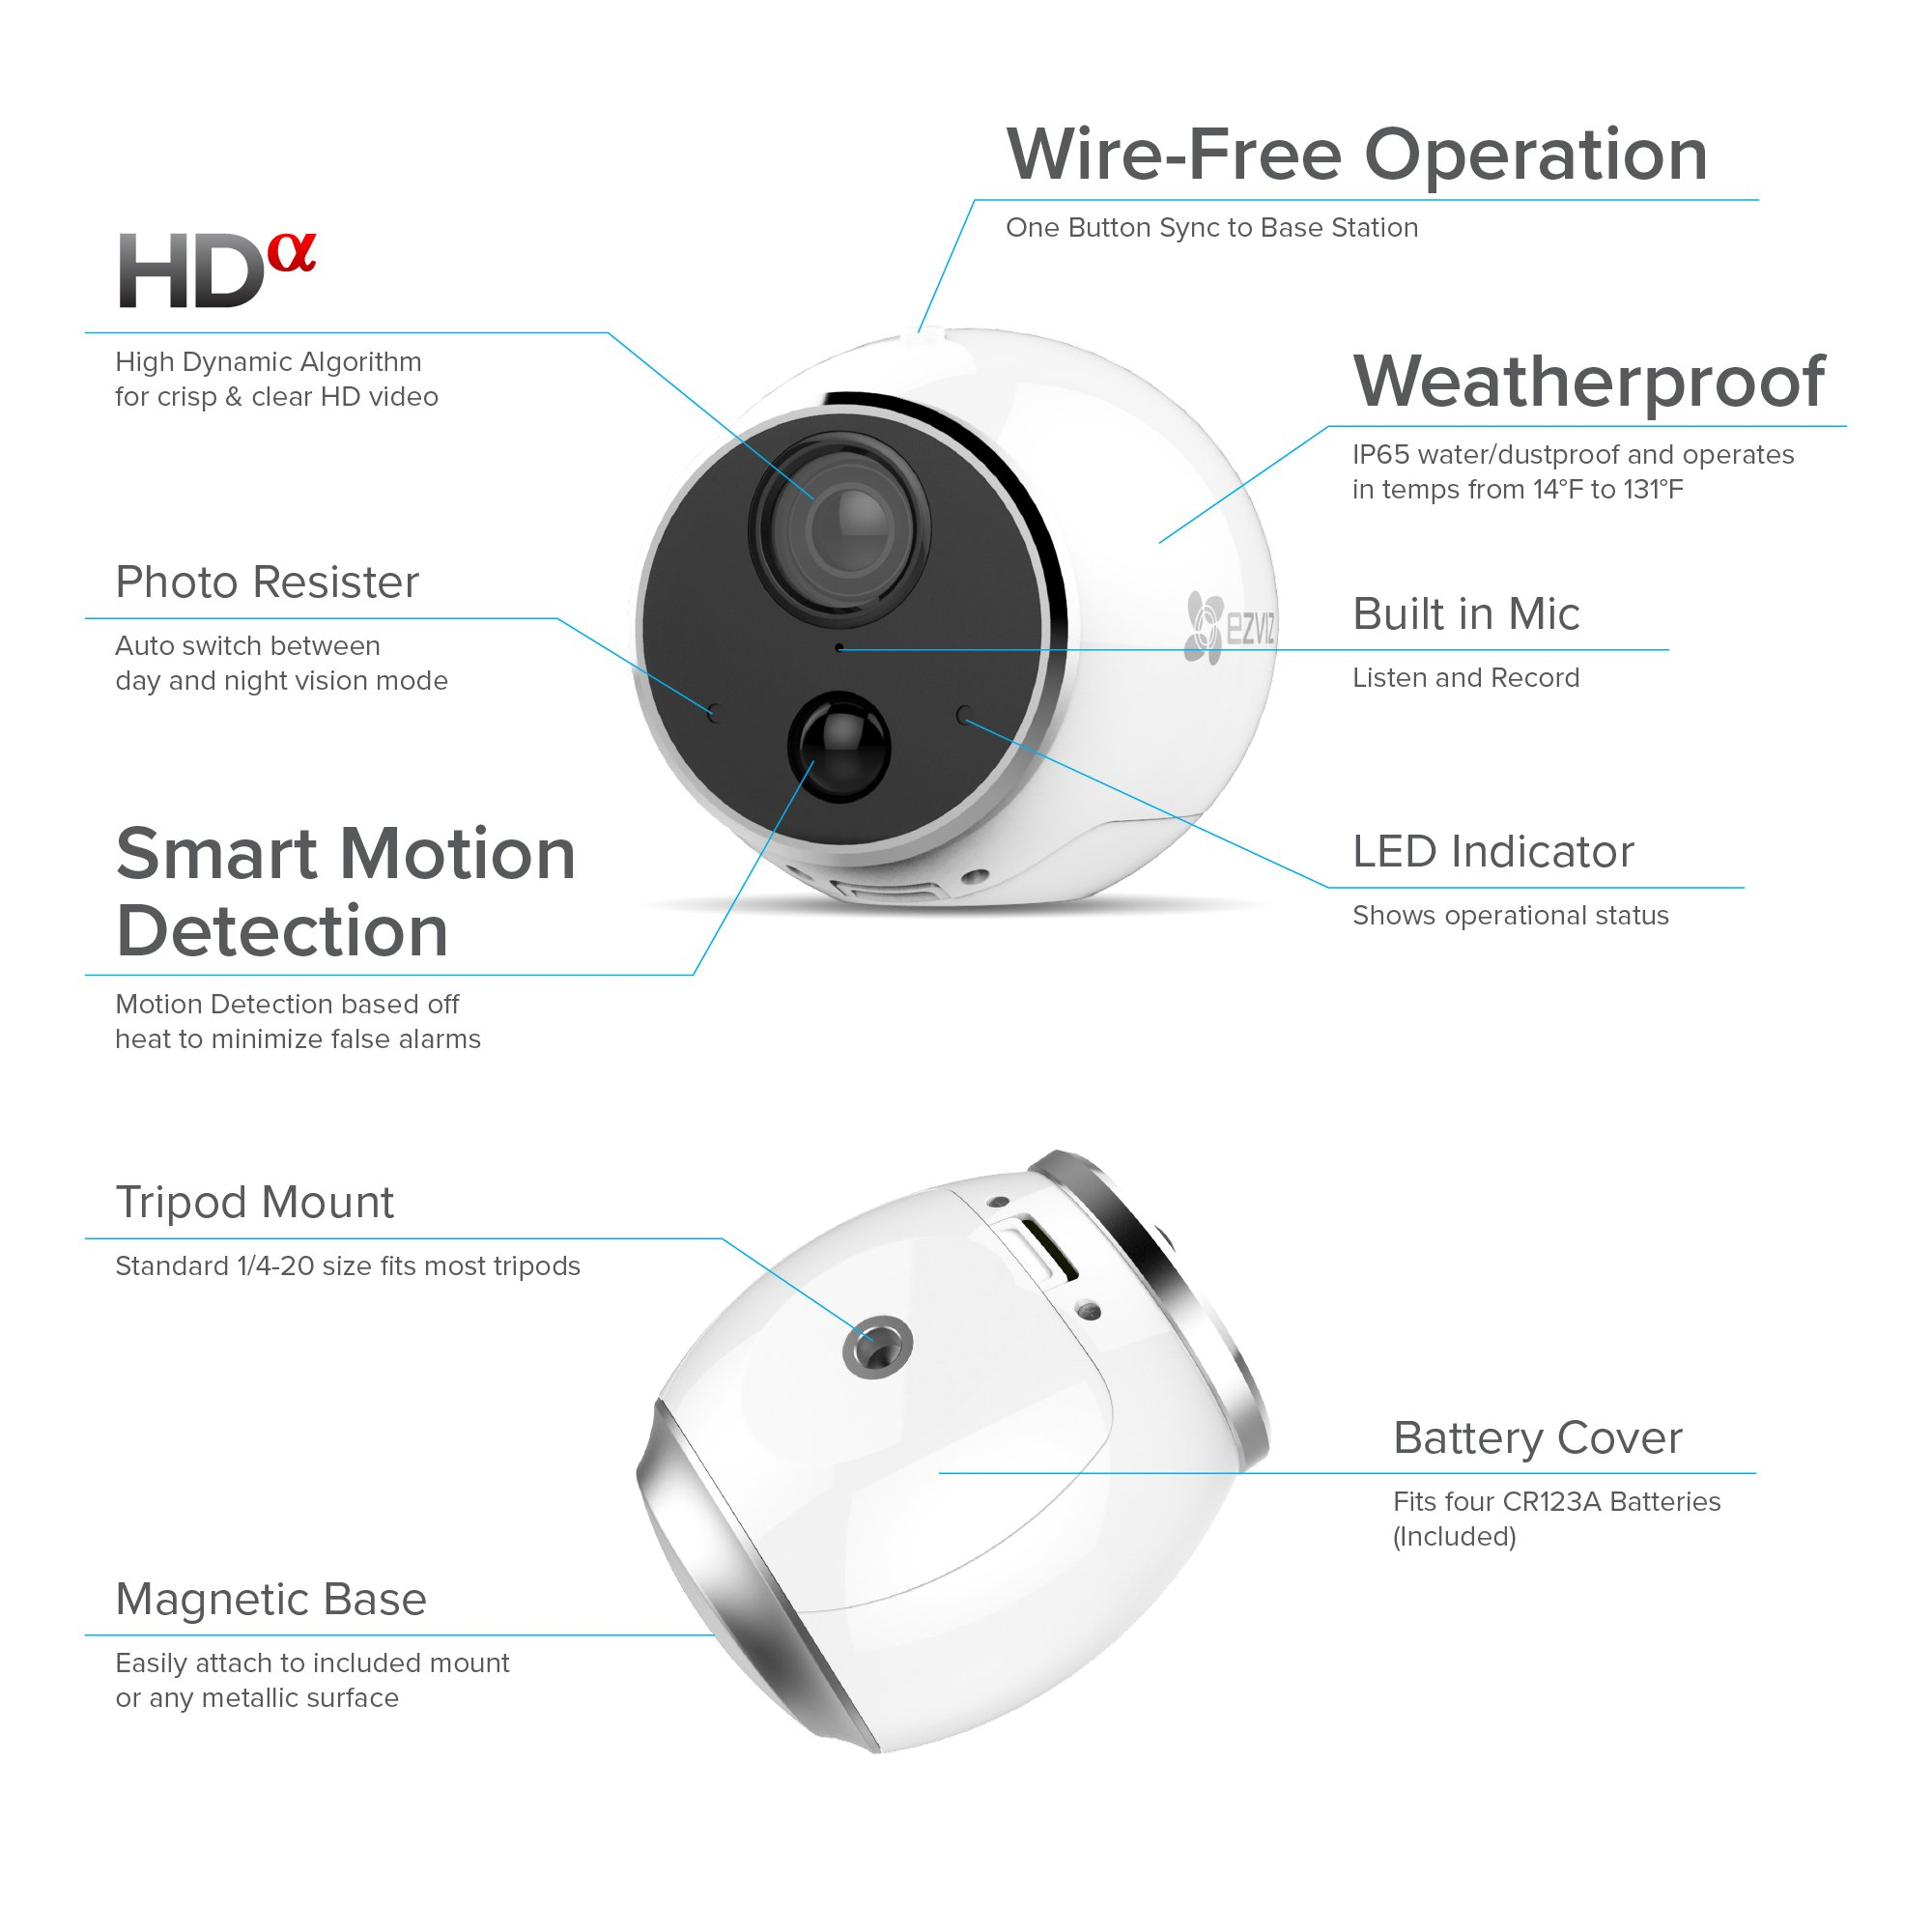 EZVIZ Mini Trooper Wire-Free Indoor / Outdoor Security Camera System with 8GB MicroSD Card, Works with Alexa by EZVIZ (Image #2)